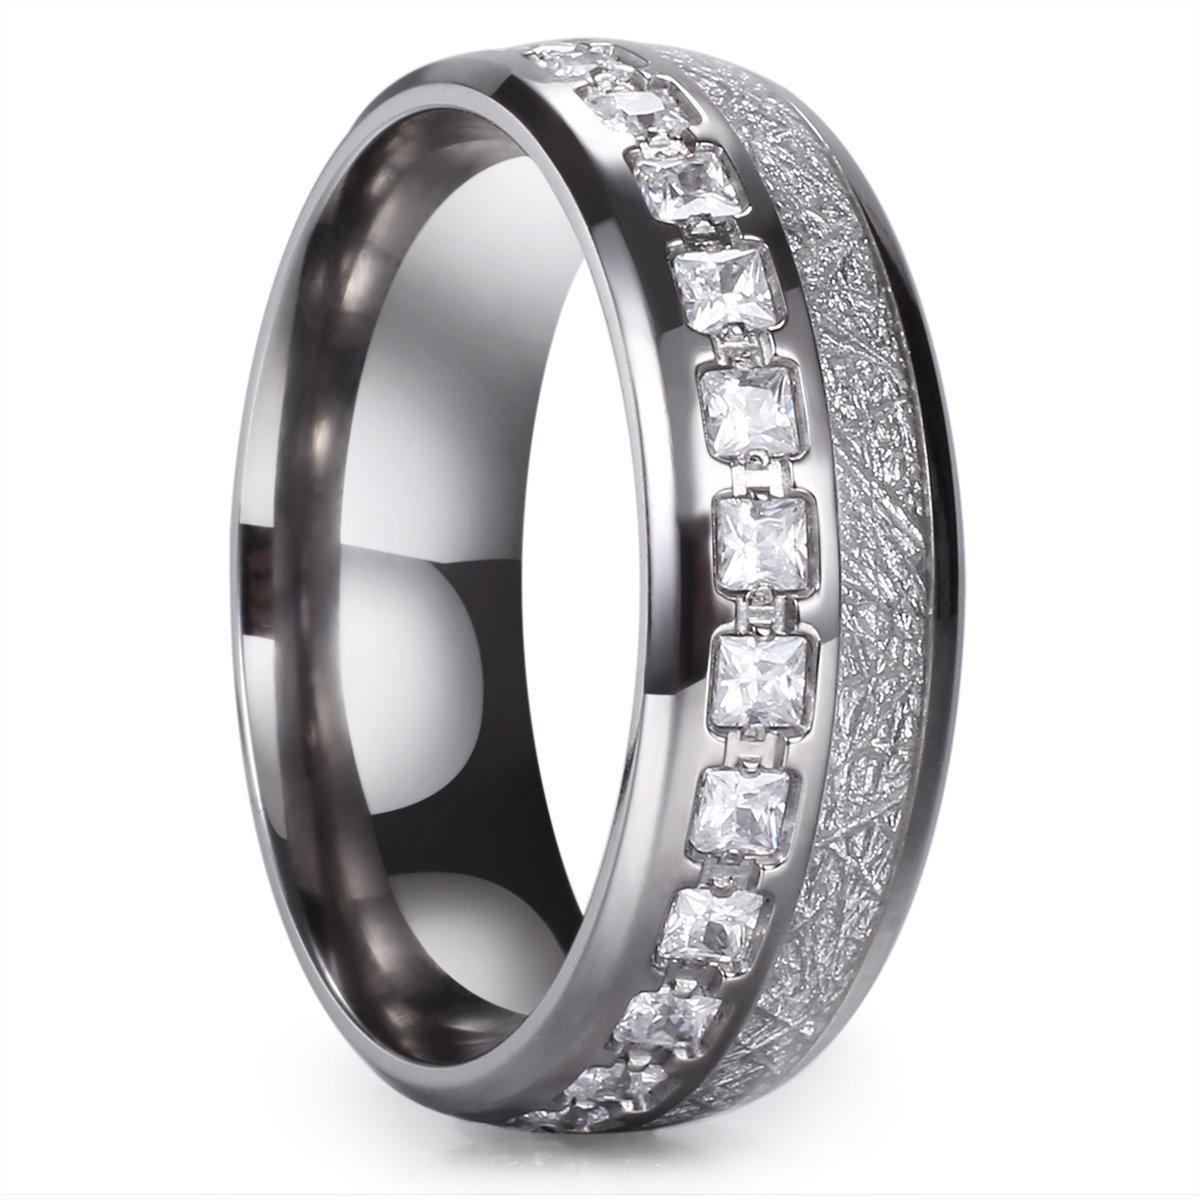 King Will Meteor 8mm Titanium Ring Domed Imitated Meteorite Wedding Band with Cubic Zirconia 7.5